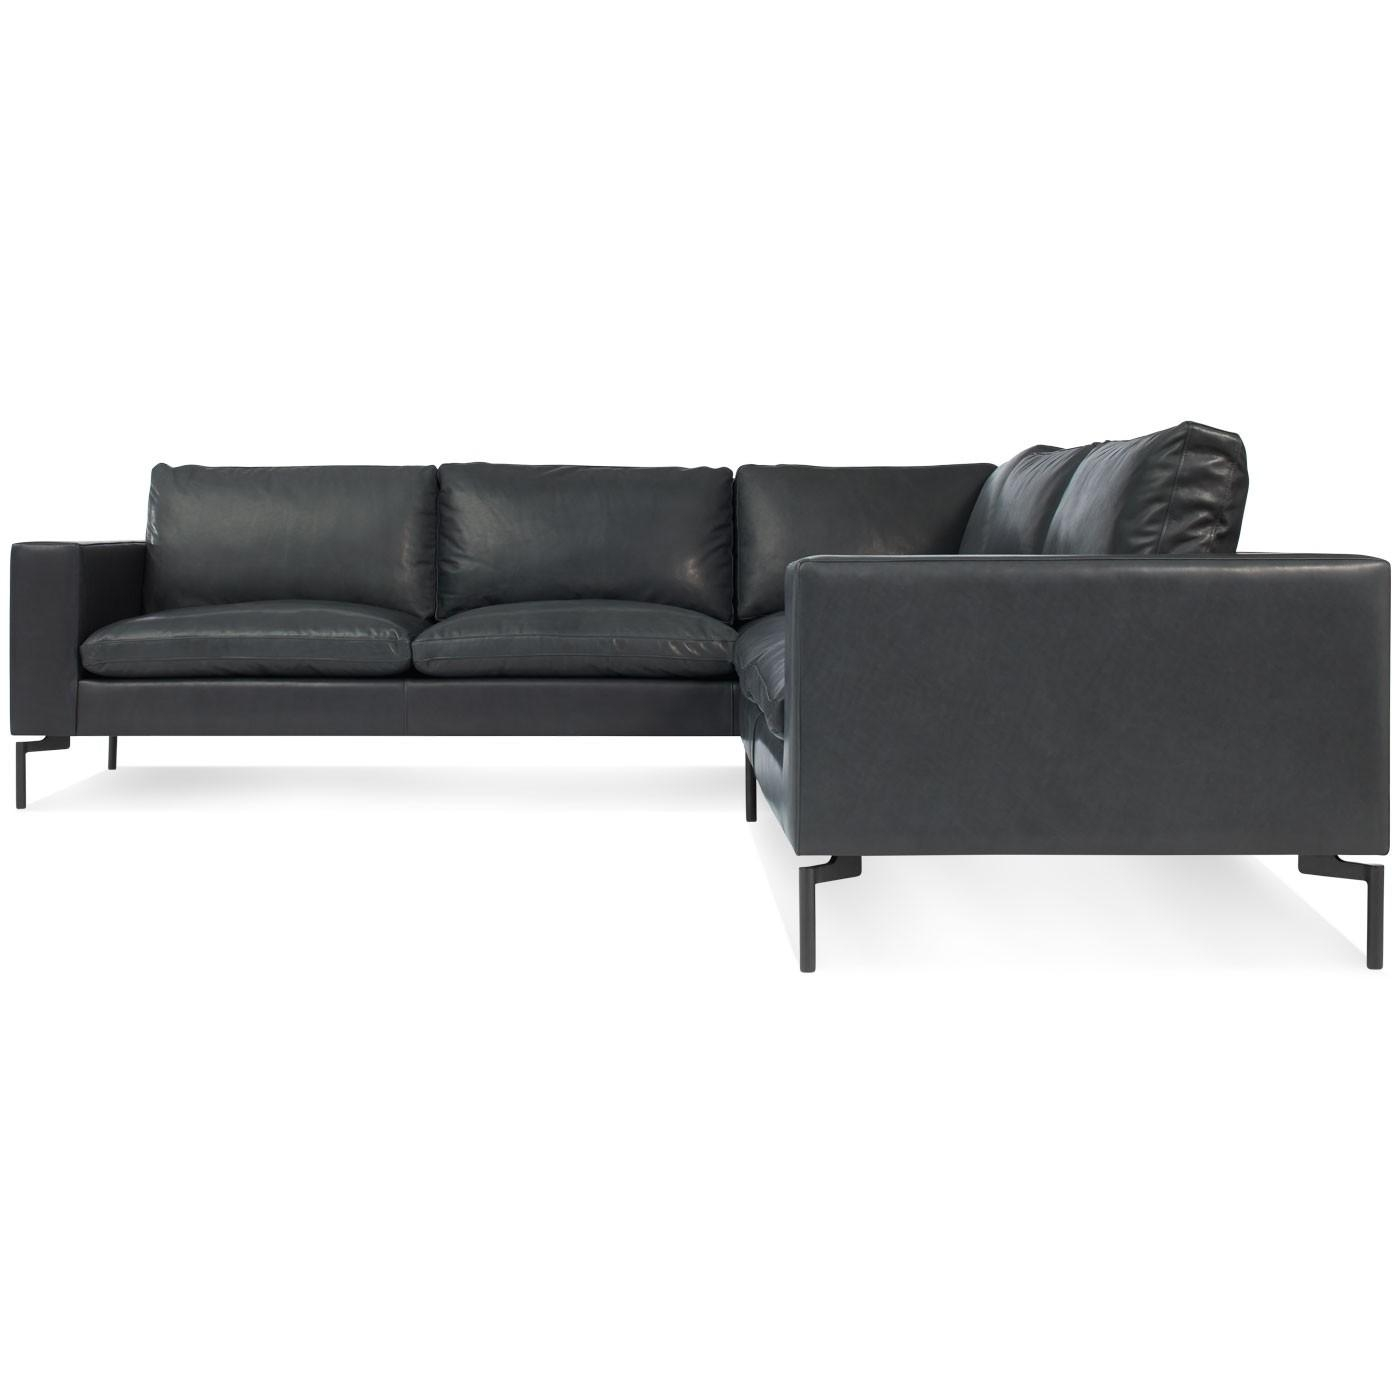 New Standard Small Leather Sectional – Modern Leather Sofa | Blu Dot Within Modern Small Sectional Sofas (View 15 of 20)